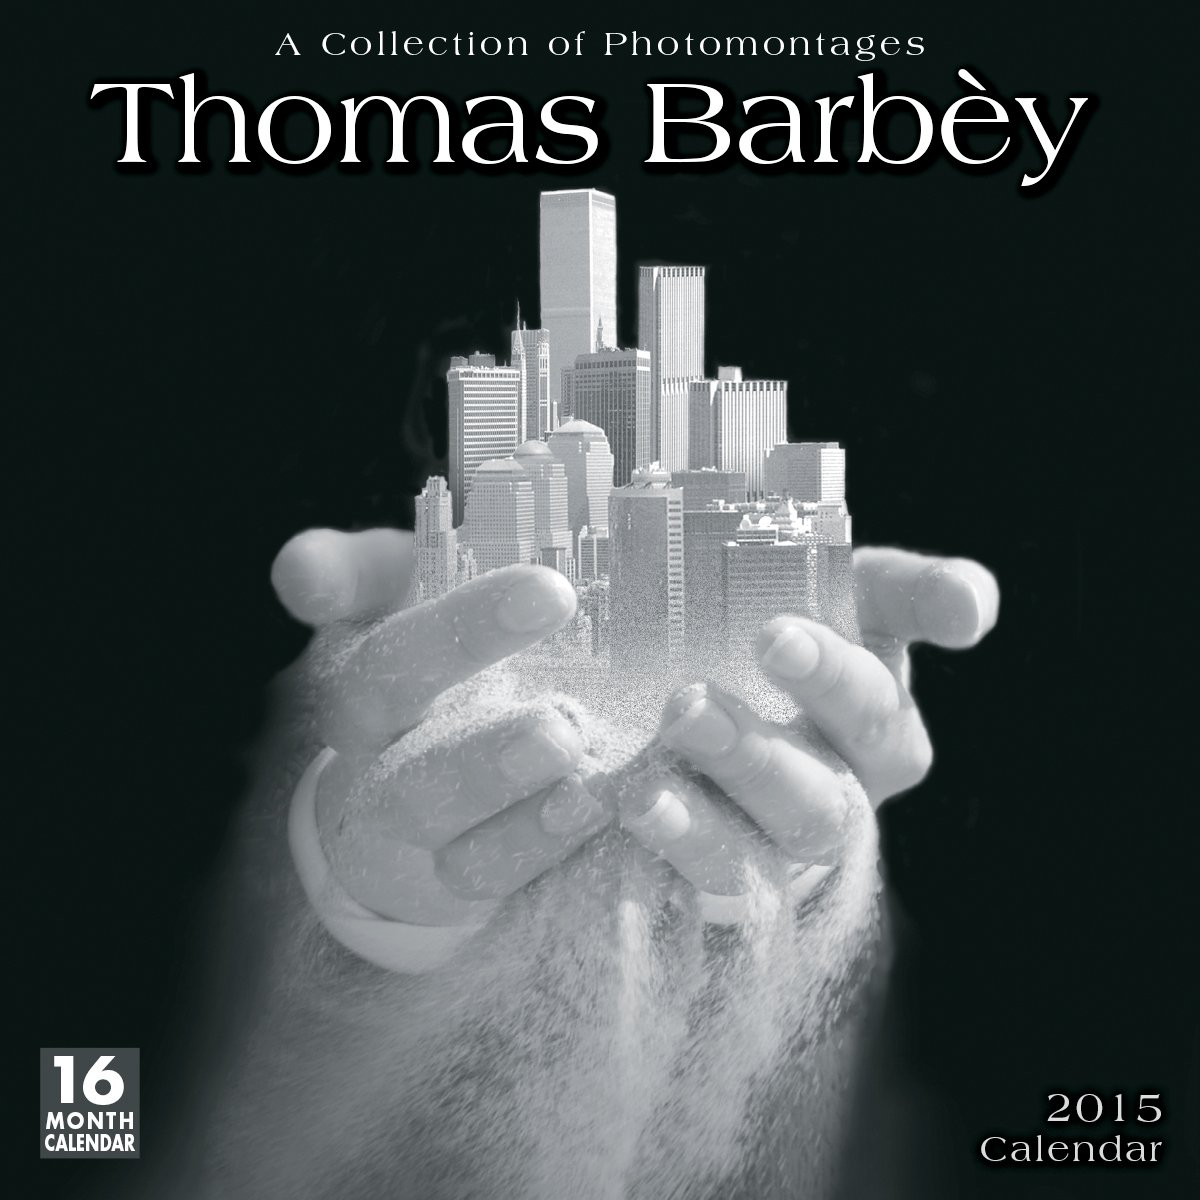 Thomas Barbéy: A Collection of Photomontages 2015 Wall Calendar